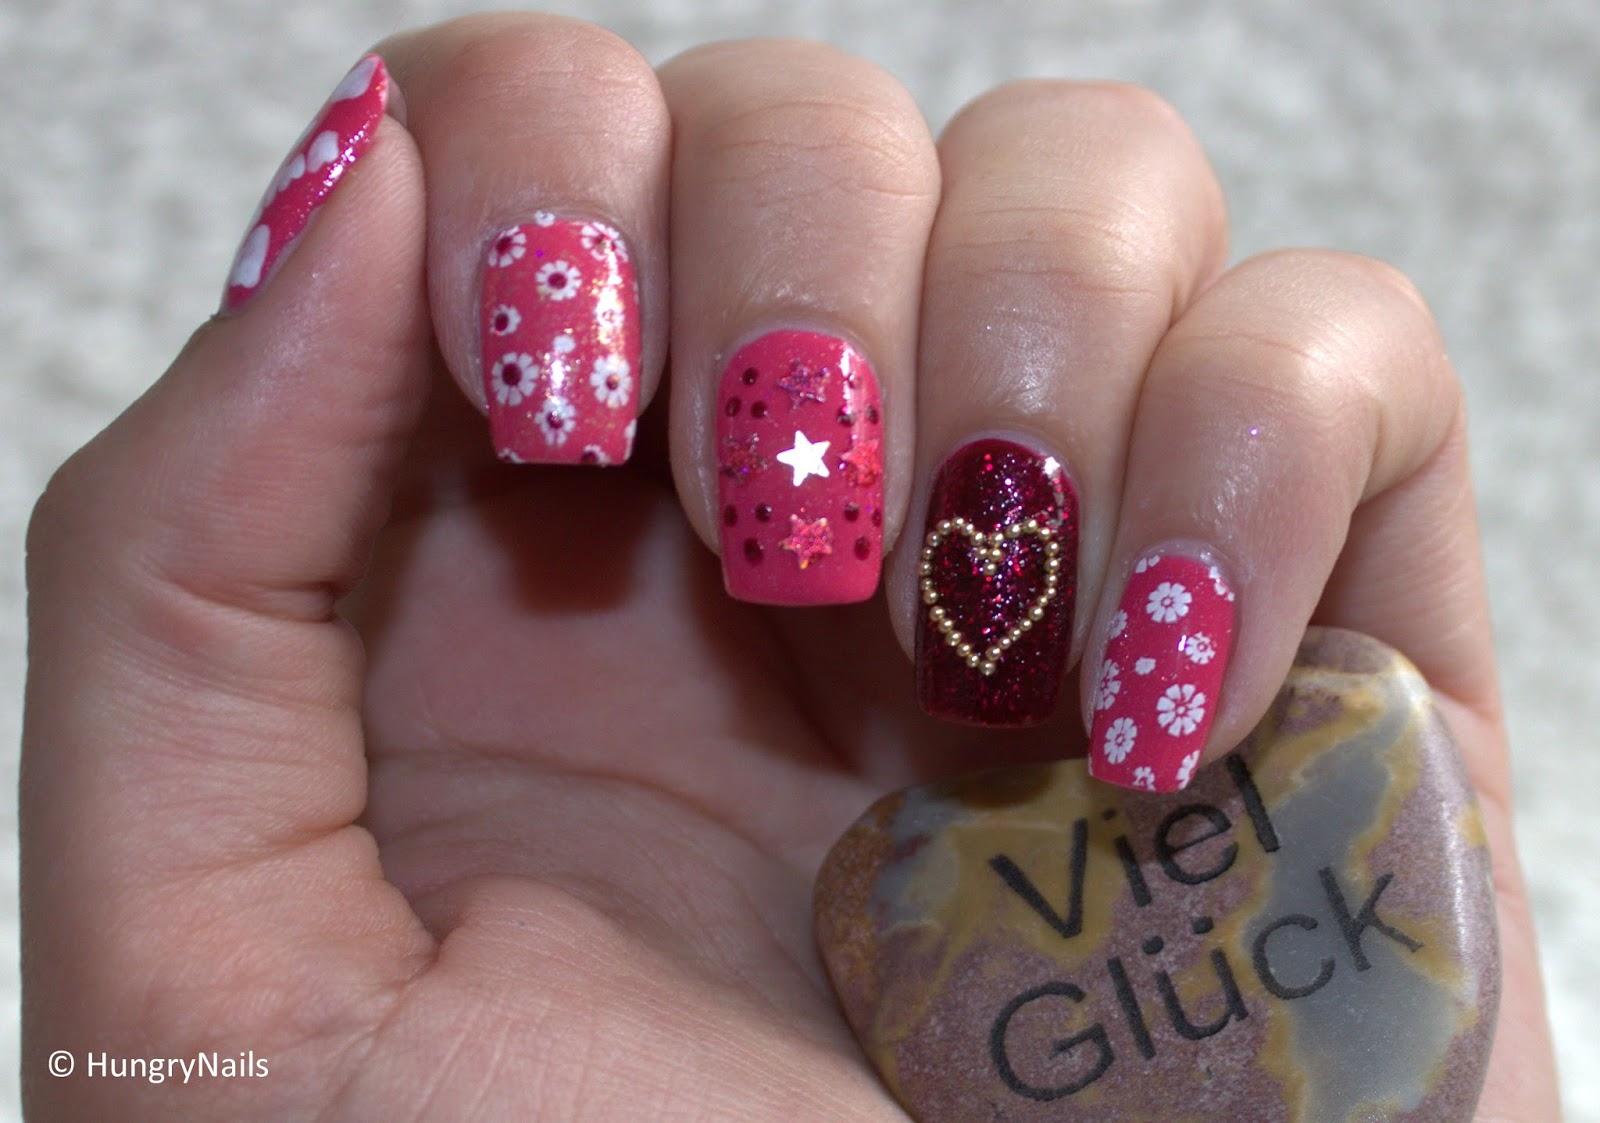 http://hungrynails.blogspot.de/2014/05/skittle-nails-fuer-mama.html